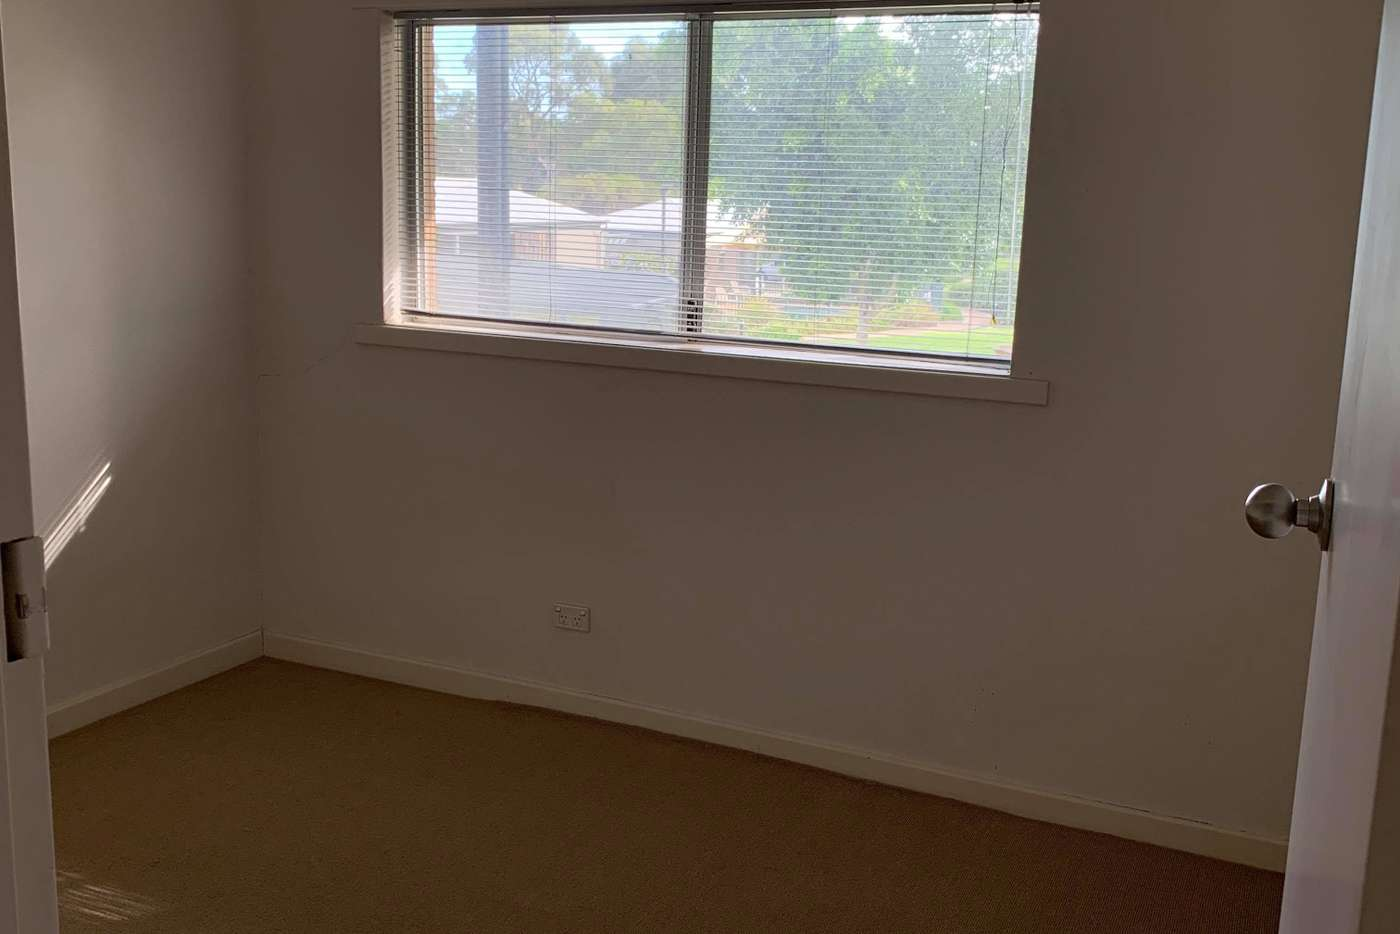 Sixth view of Homely unit listing, 10/15 Friar John Way, Coolbellup WA 6163